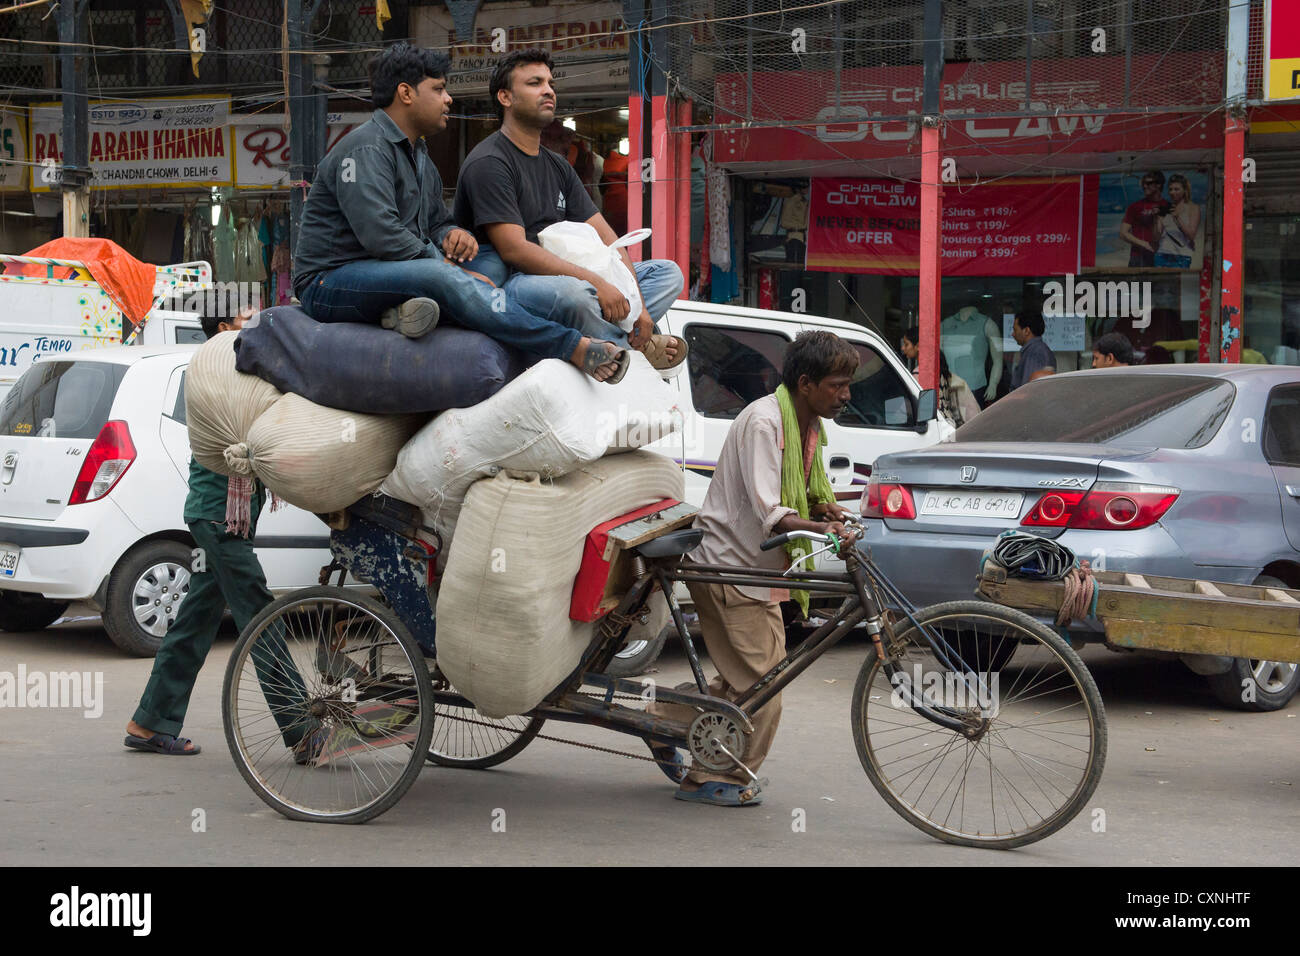 Overloaded Cart Stockfotos & Overloaded Cart Bilder - Alamy